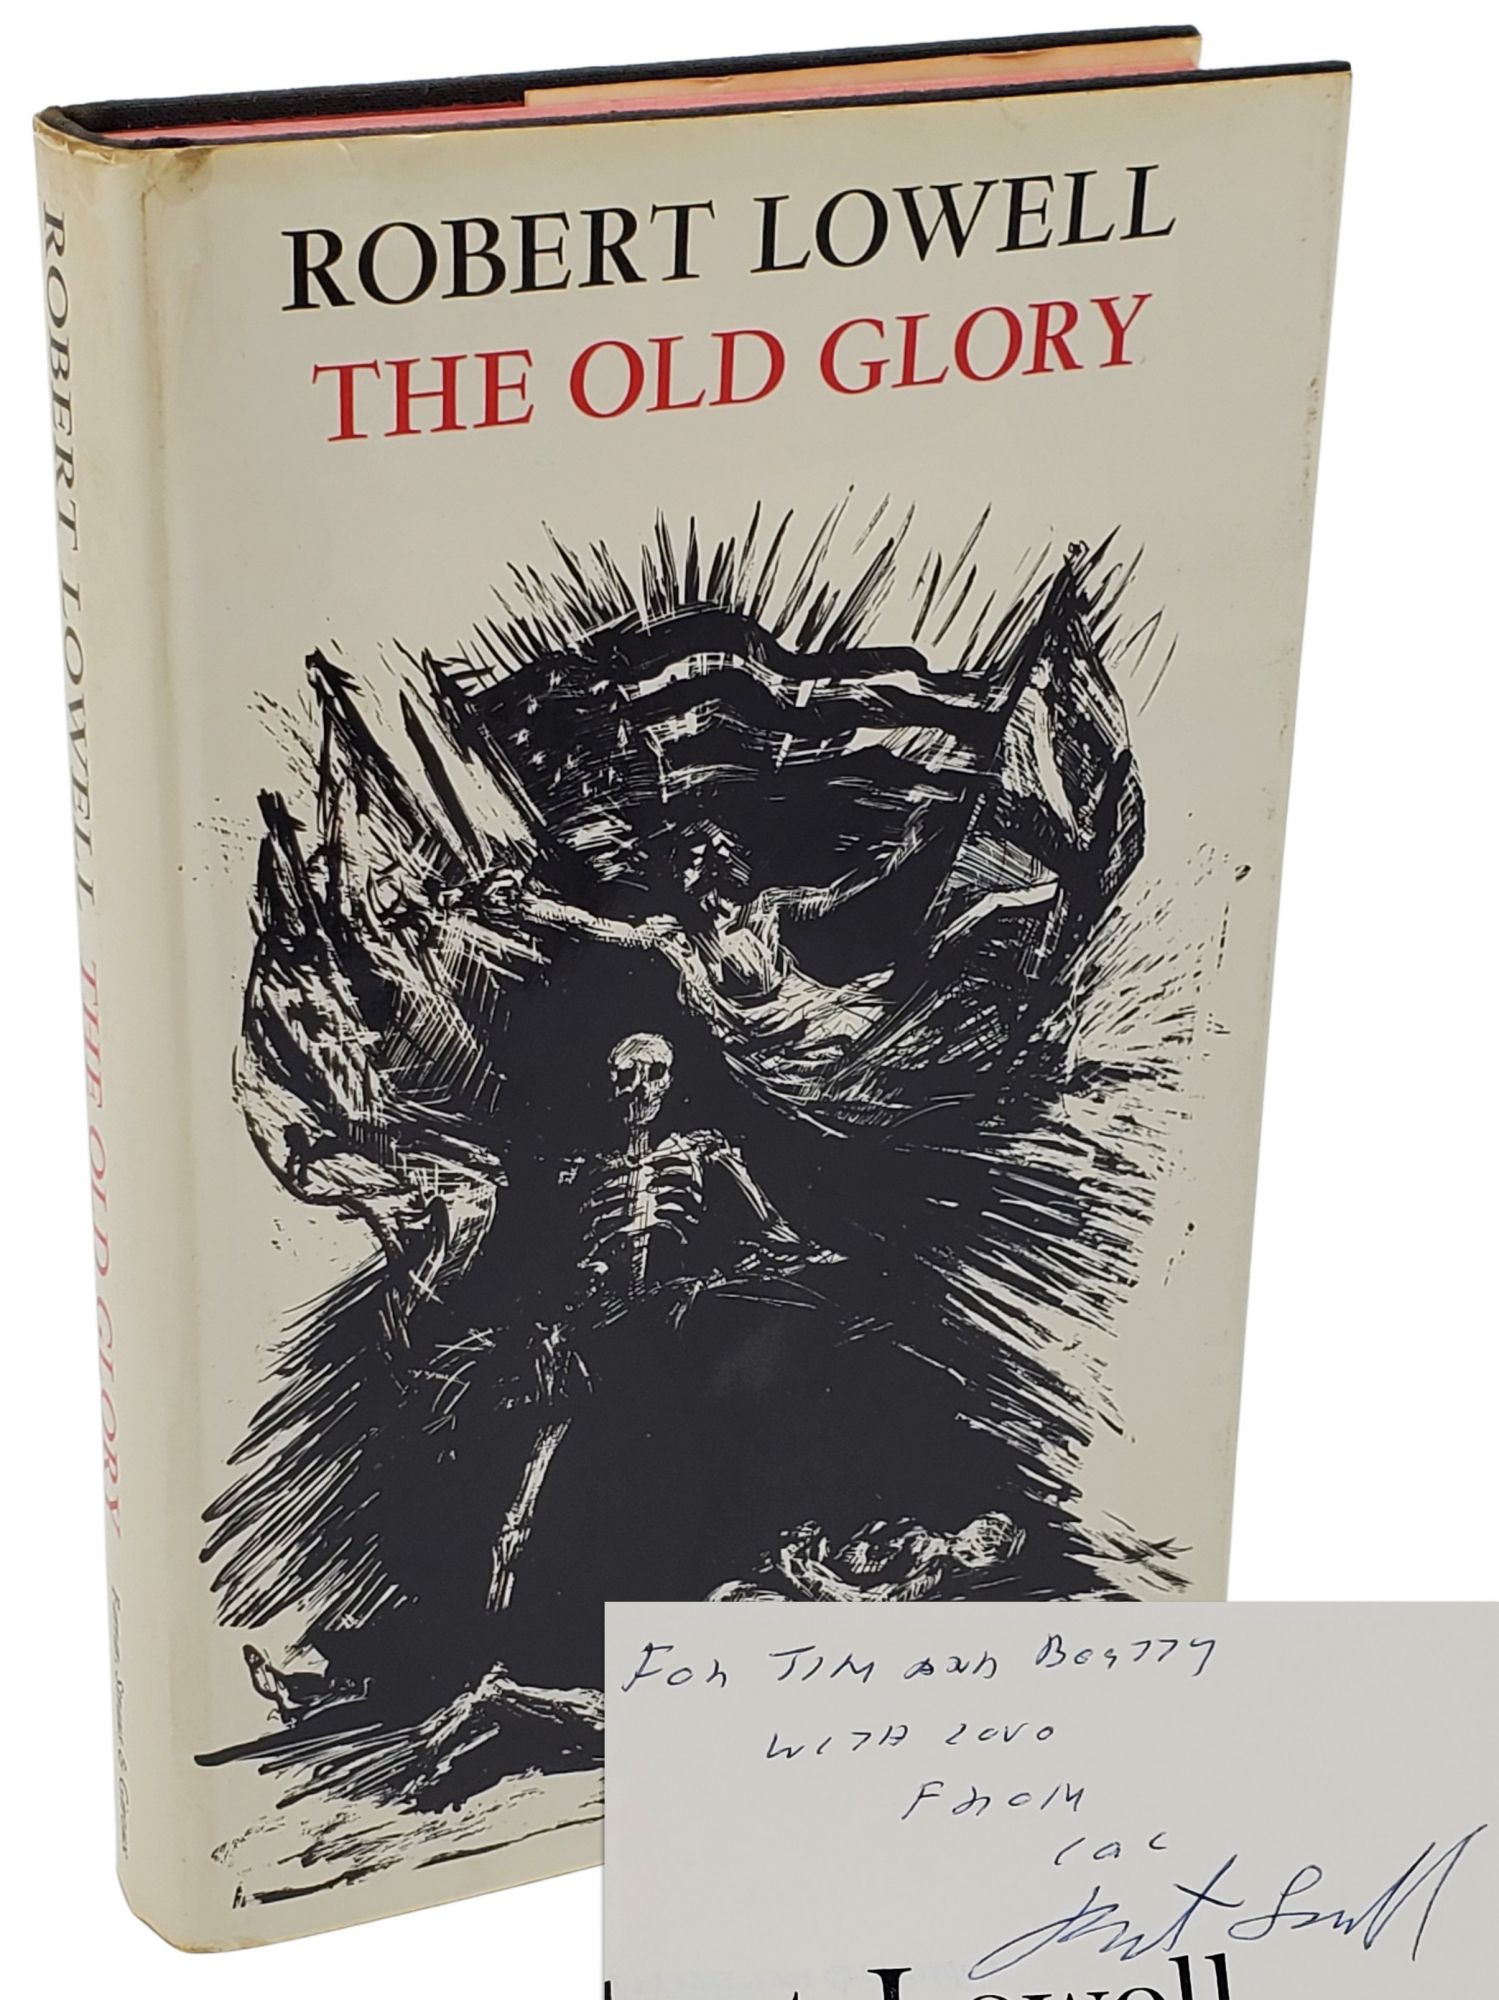 THE OLD GLORY [SIGNED ASSOCATION COPY]. Robert Lowell.